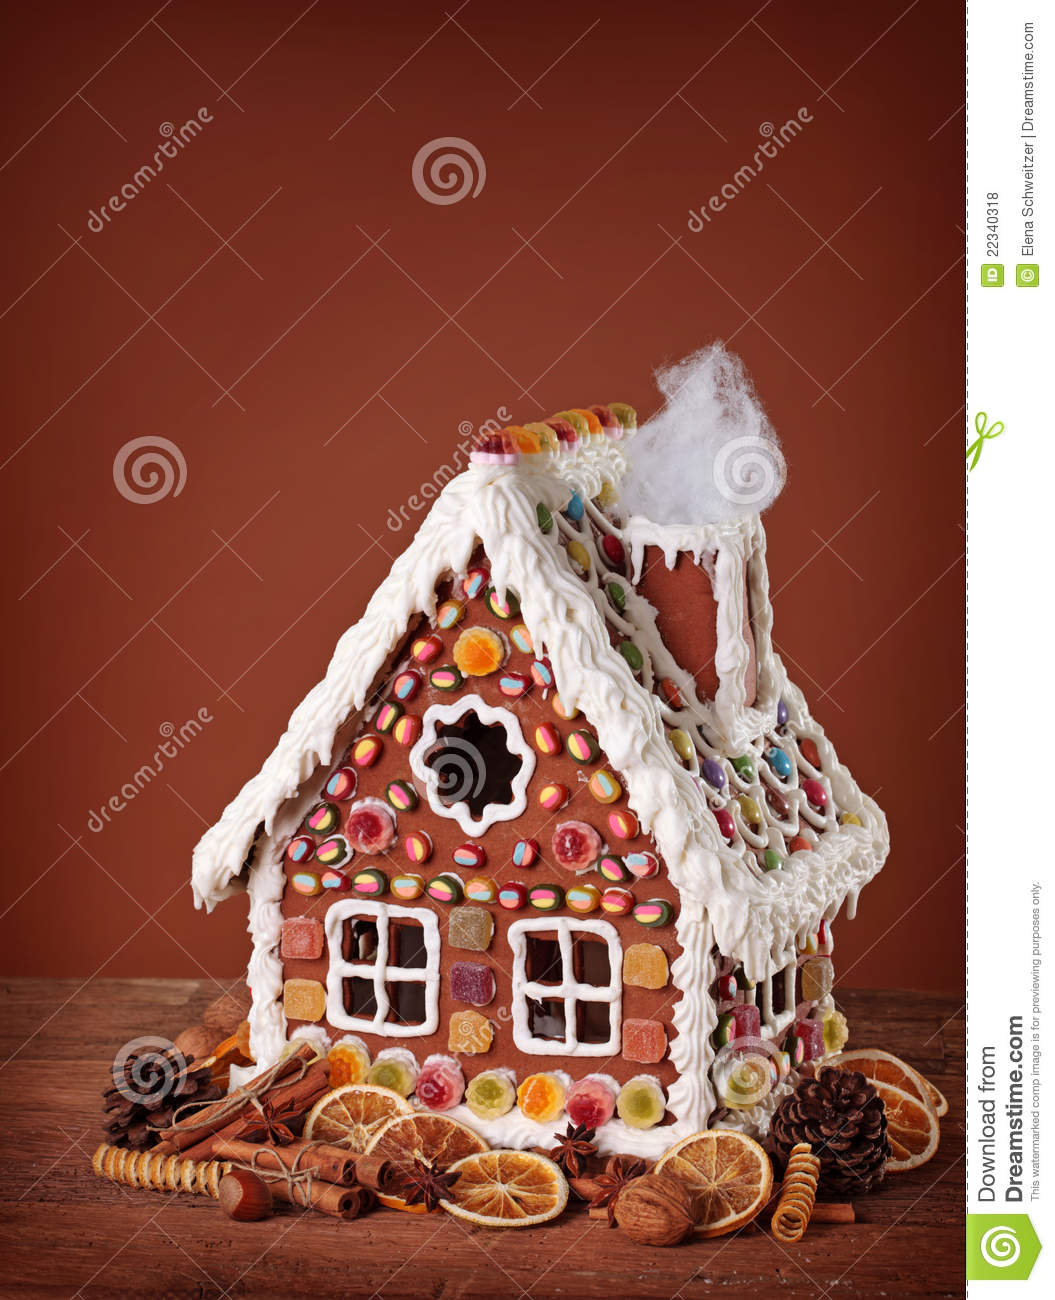 Homemade Gingerbread House Royalty Free Stock Photos